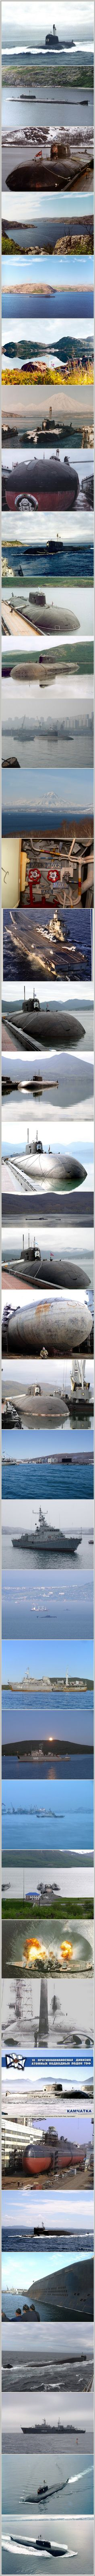 Russian Fleet Submarines